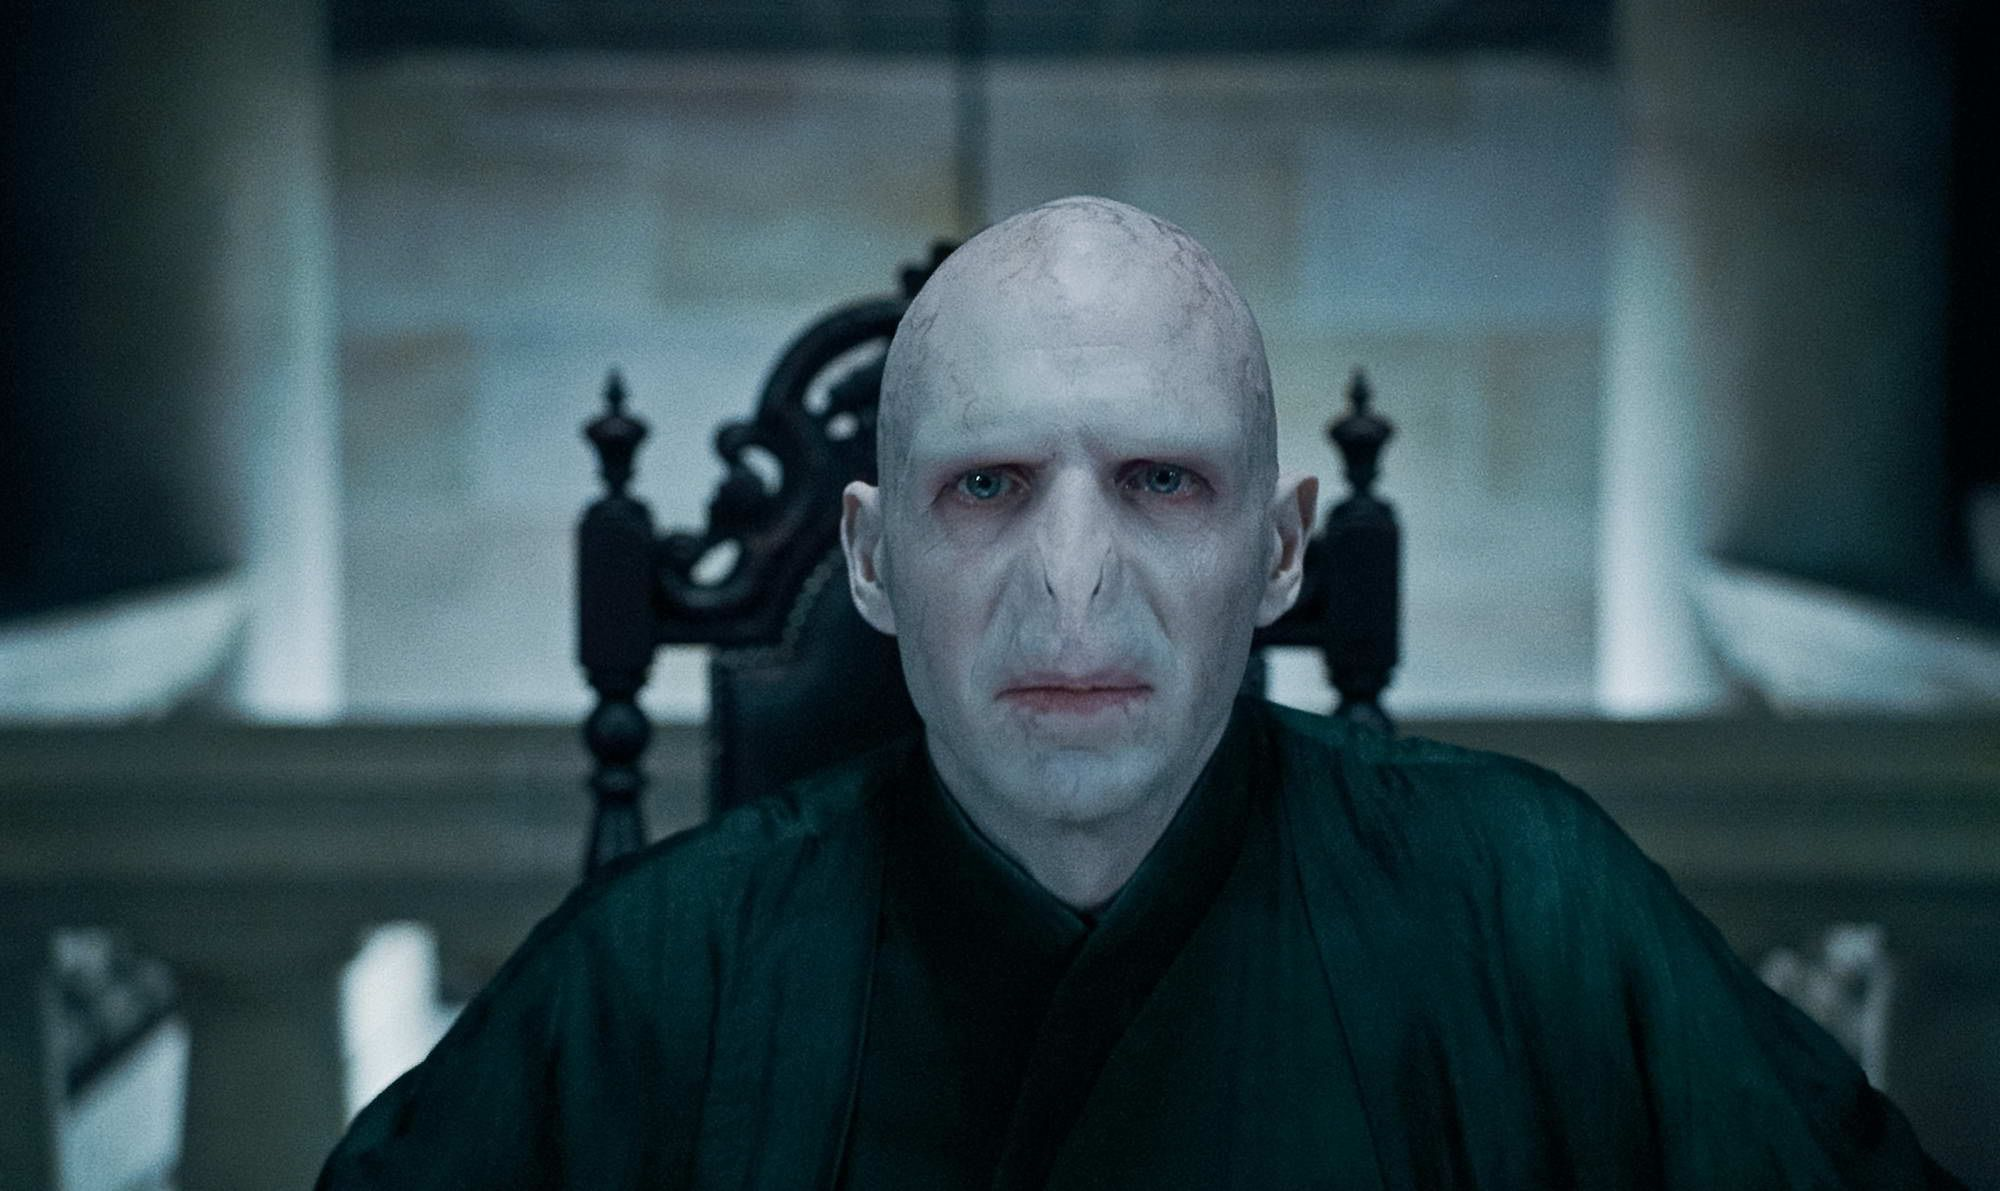 Harry potter and the deathly hallows part 1 film review slant harry potter and the deathly hallows part 1 film review slant magazine biocorpaavc Choice Image